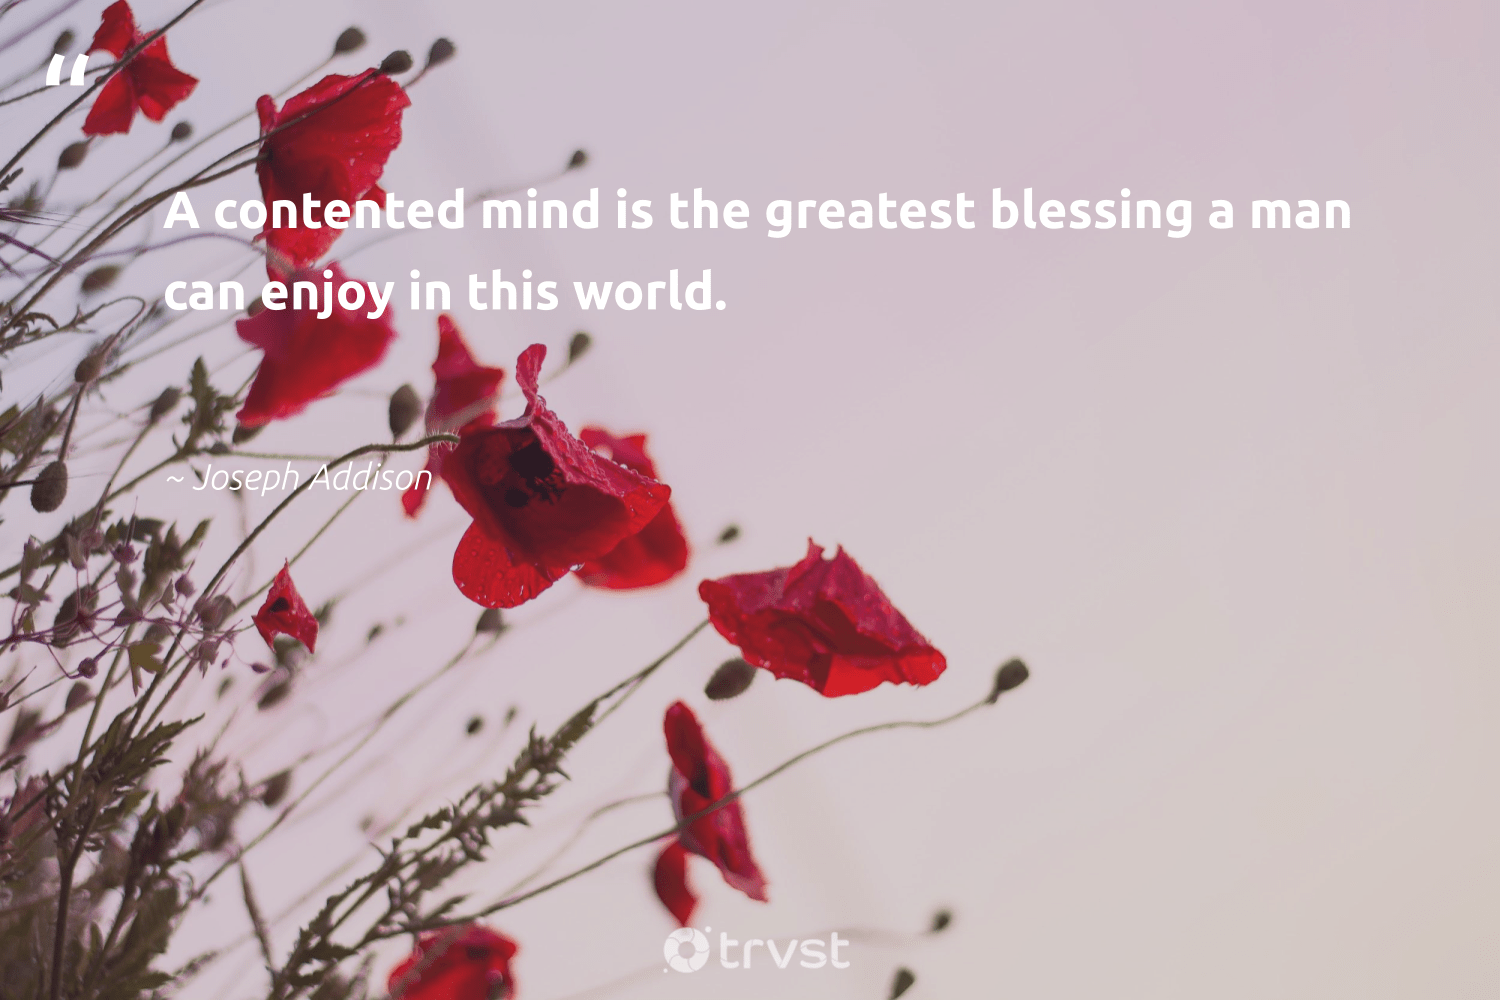 """""""A contented mind is the greatest blessing a man can enjoy in this world.""""  - Joseph Addison #trvst #quotes #begreat #impact #changemakers #collectiveaction #health #bethechange #mindset #socialimpact #nevergiveup #dotherightthing"""